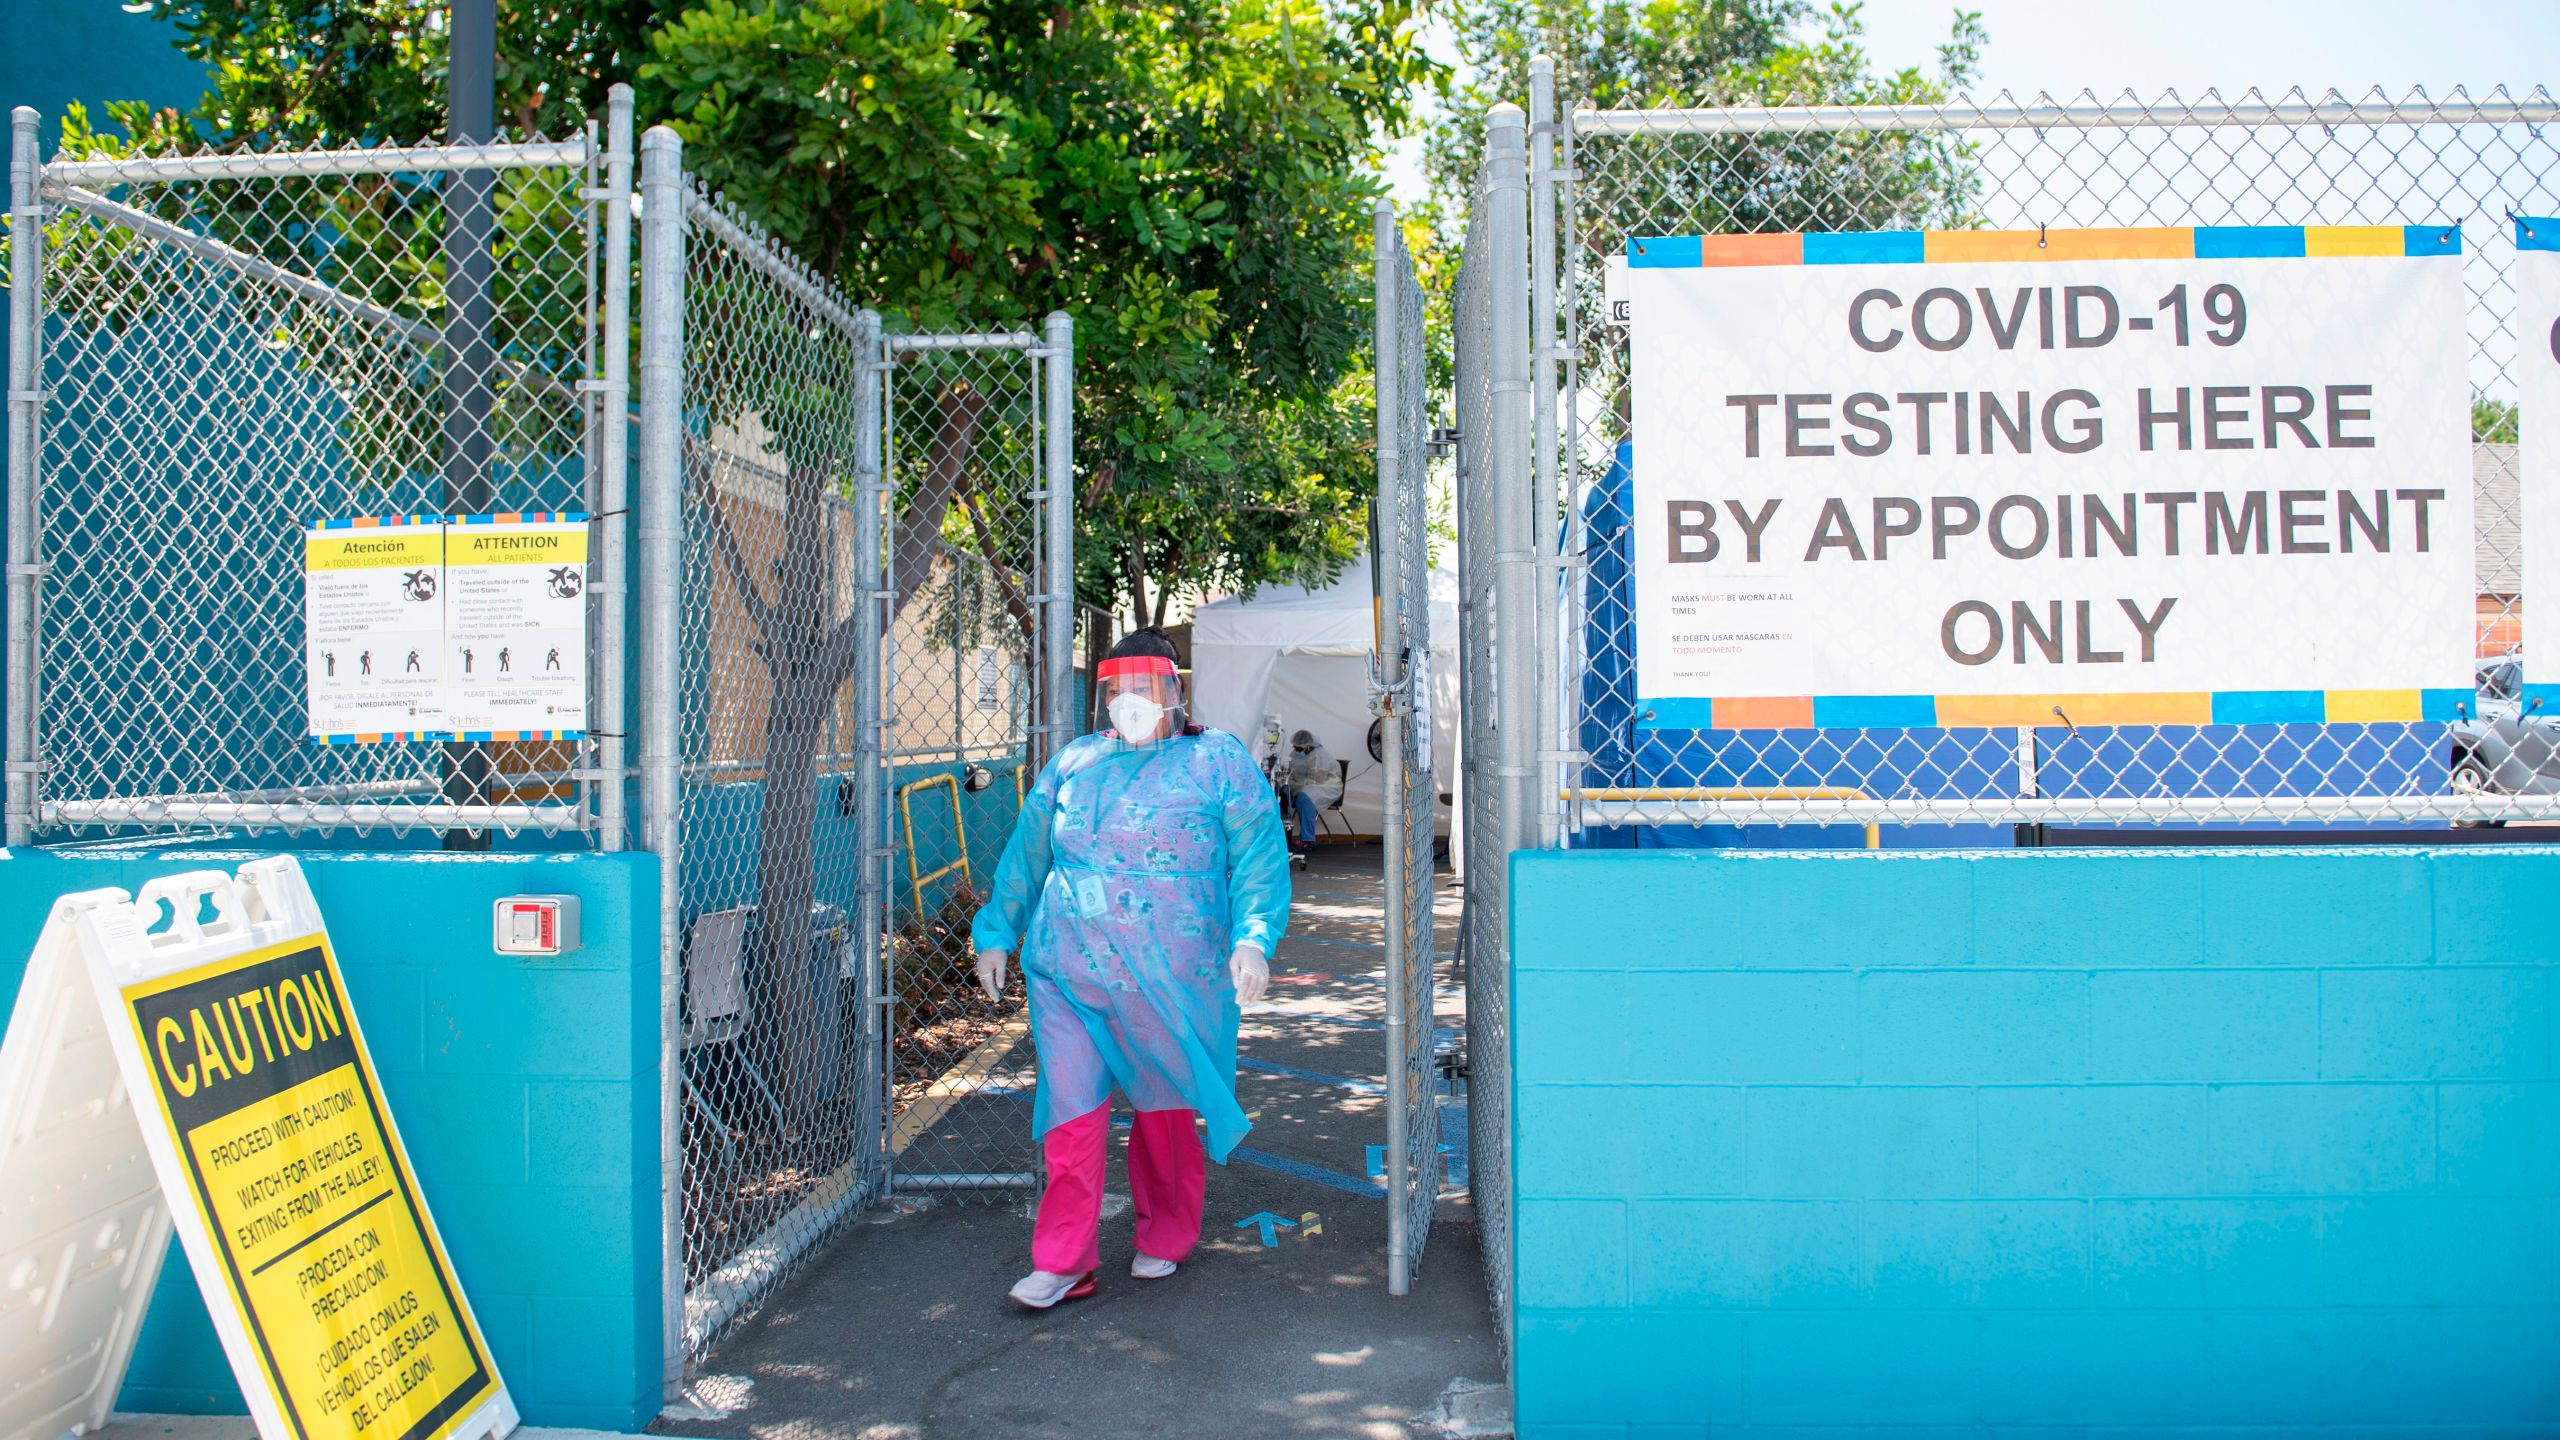 A health worker walks near a COVID-19 testing site at St. John's Well Child and Family Center, amid the novel coronavirus pandemic, July 24, 2020, in Los Angeles. (VALERIE MACON/AFP via Getty Images)